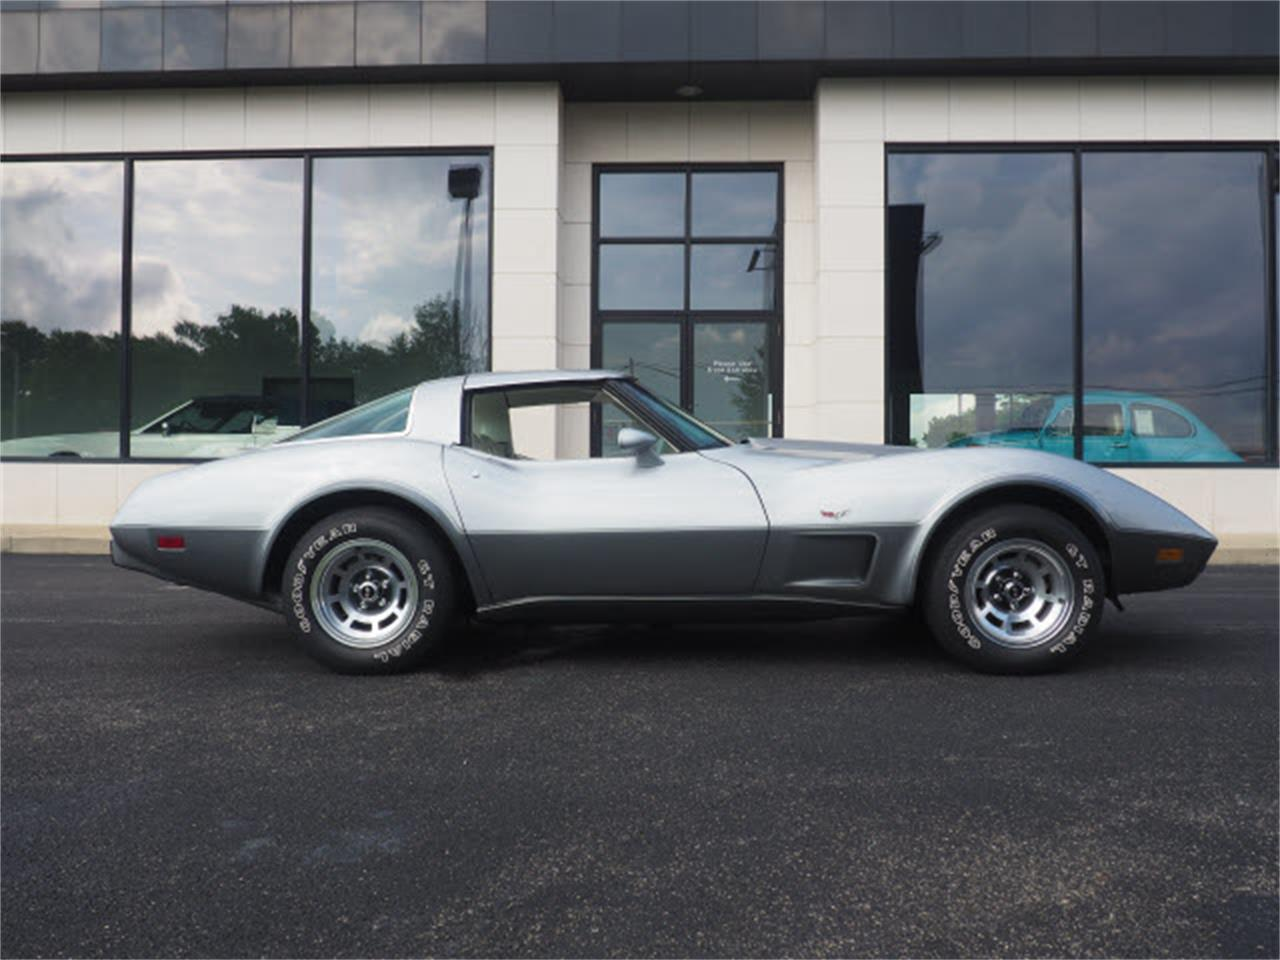 Large Picture of '78 Corvette - $22,999.00 Offered by Nelson Automotive, Ltd. - NMOD